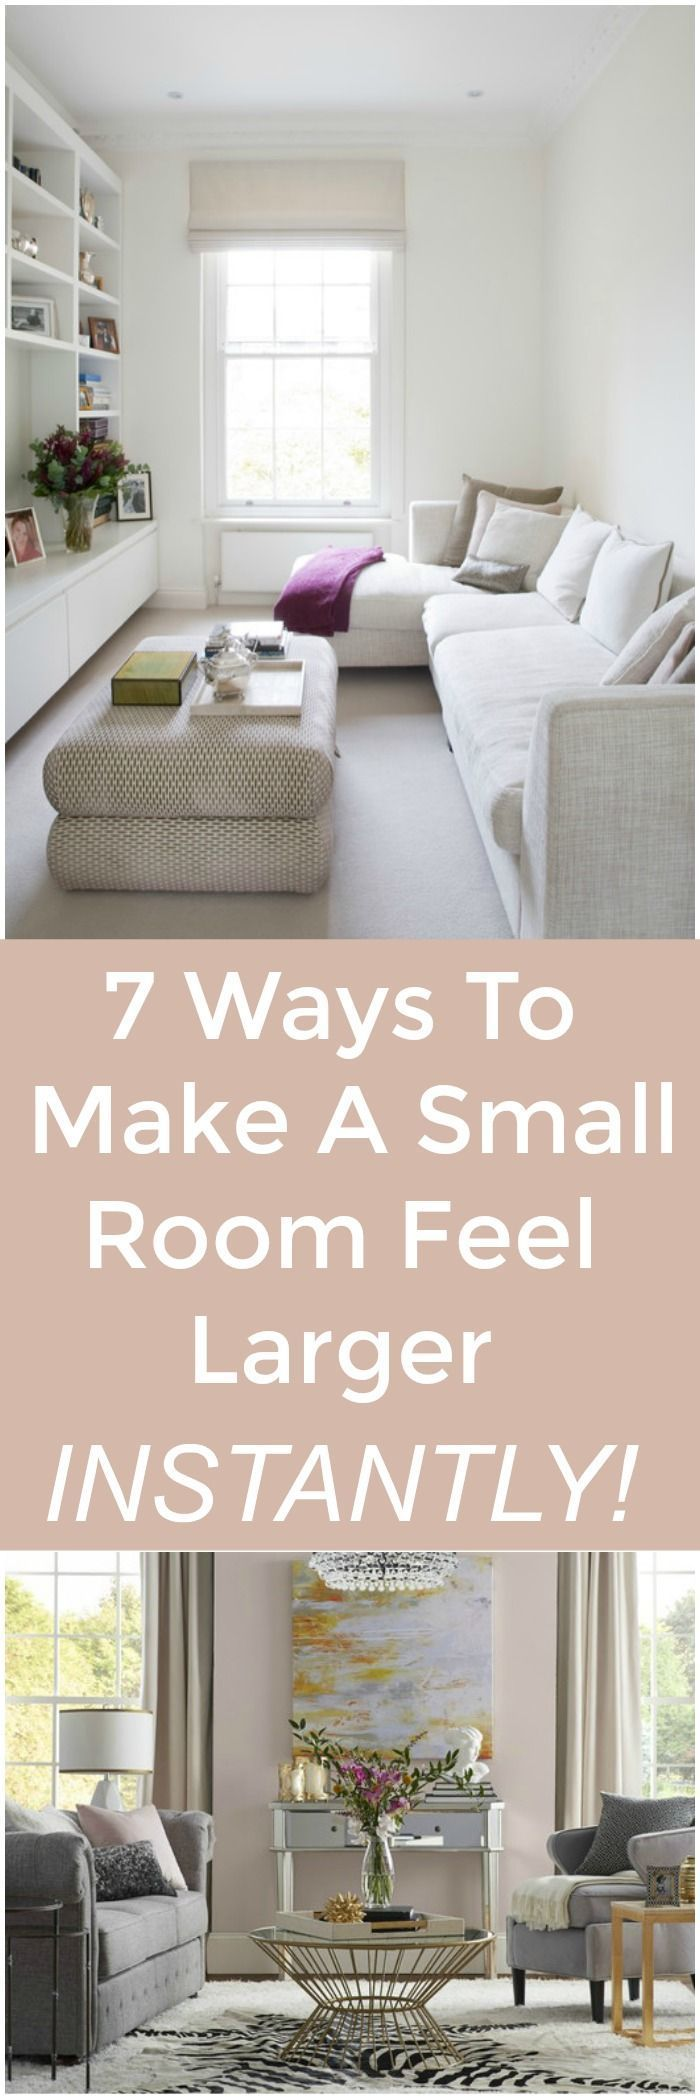 Best 25 small condo ideas on pinterest condo decorating small spaces and small condo decorating - Tips on how to decorate a living room on a budget you have ...